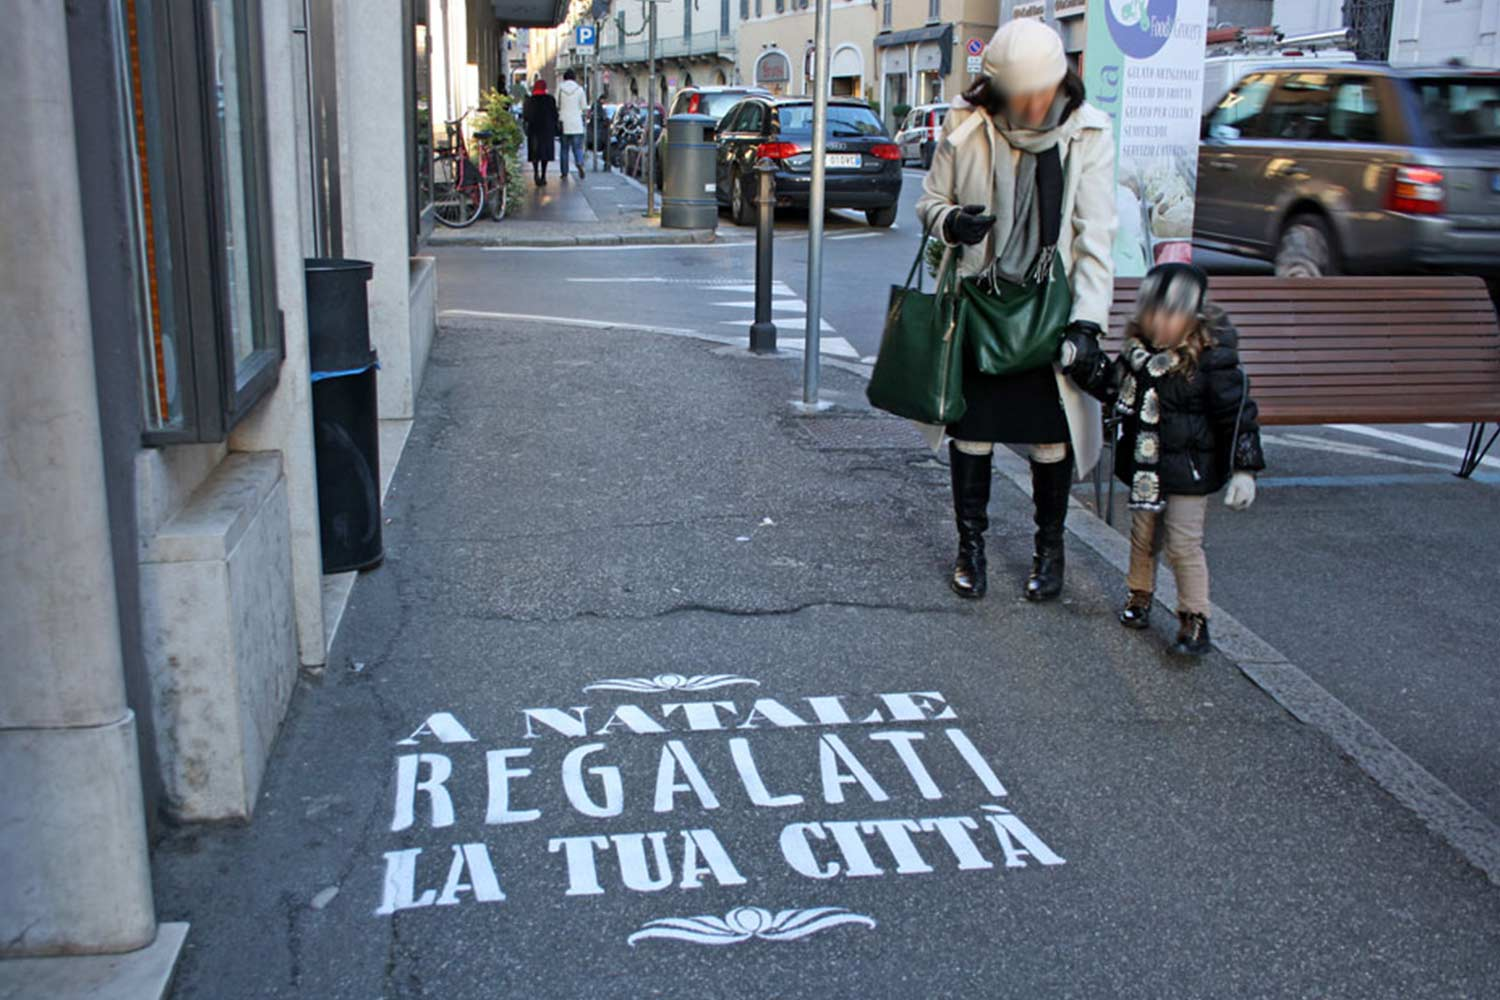 outdoor advertising comune di brescia